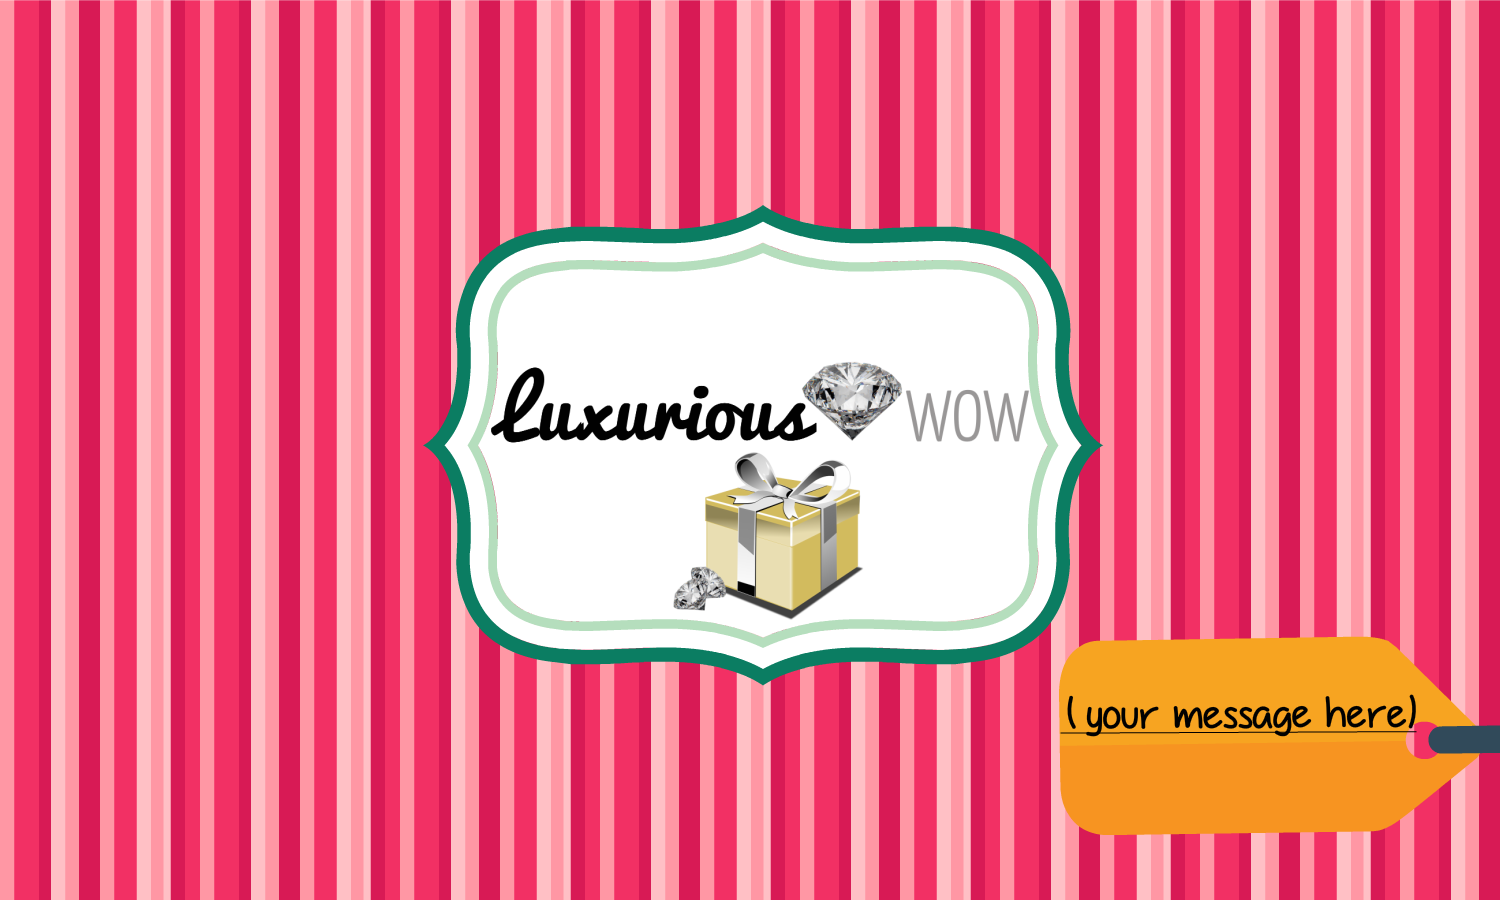 LUX WOW PEC Card V.2 | Zapponian 007 | Pinterest | Cards